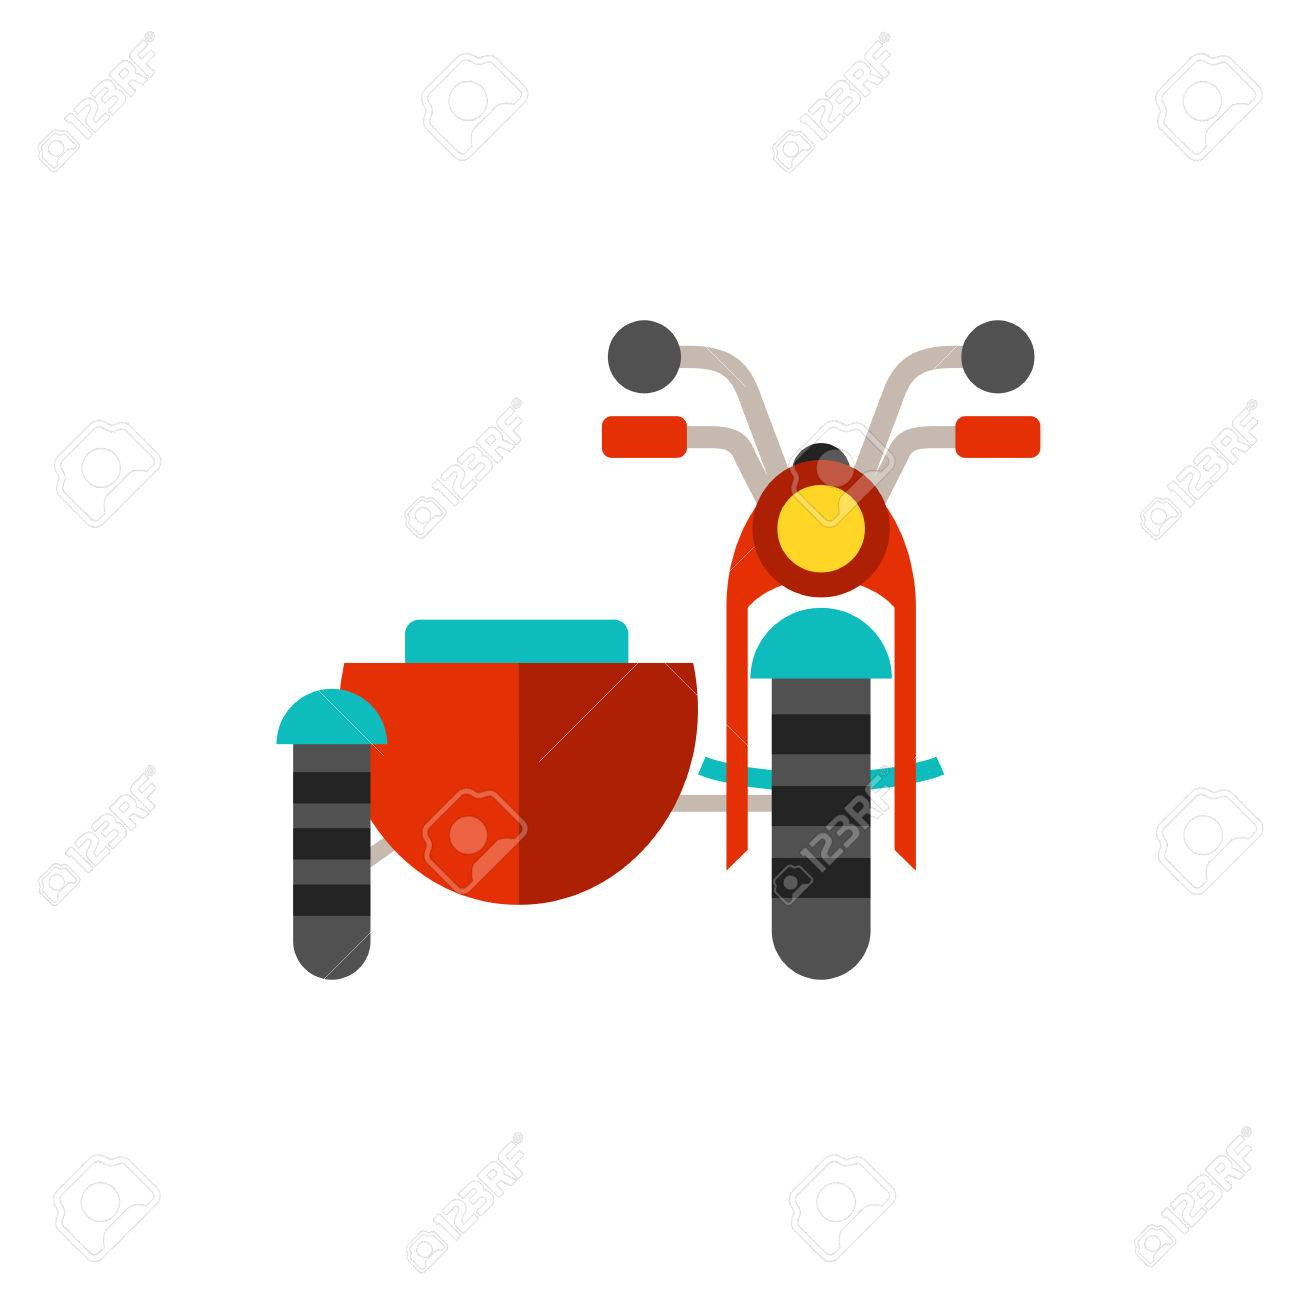 Motorcycle with sidecar icon.